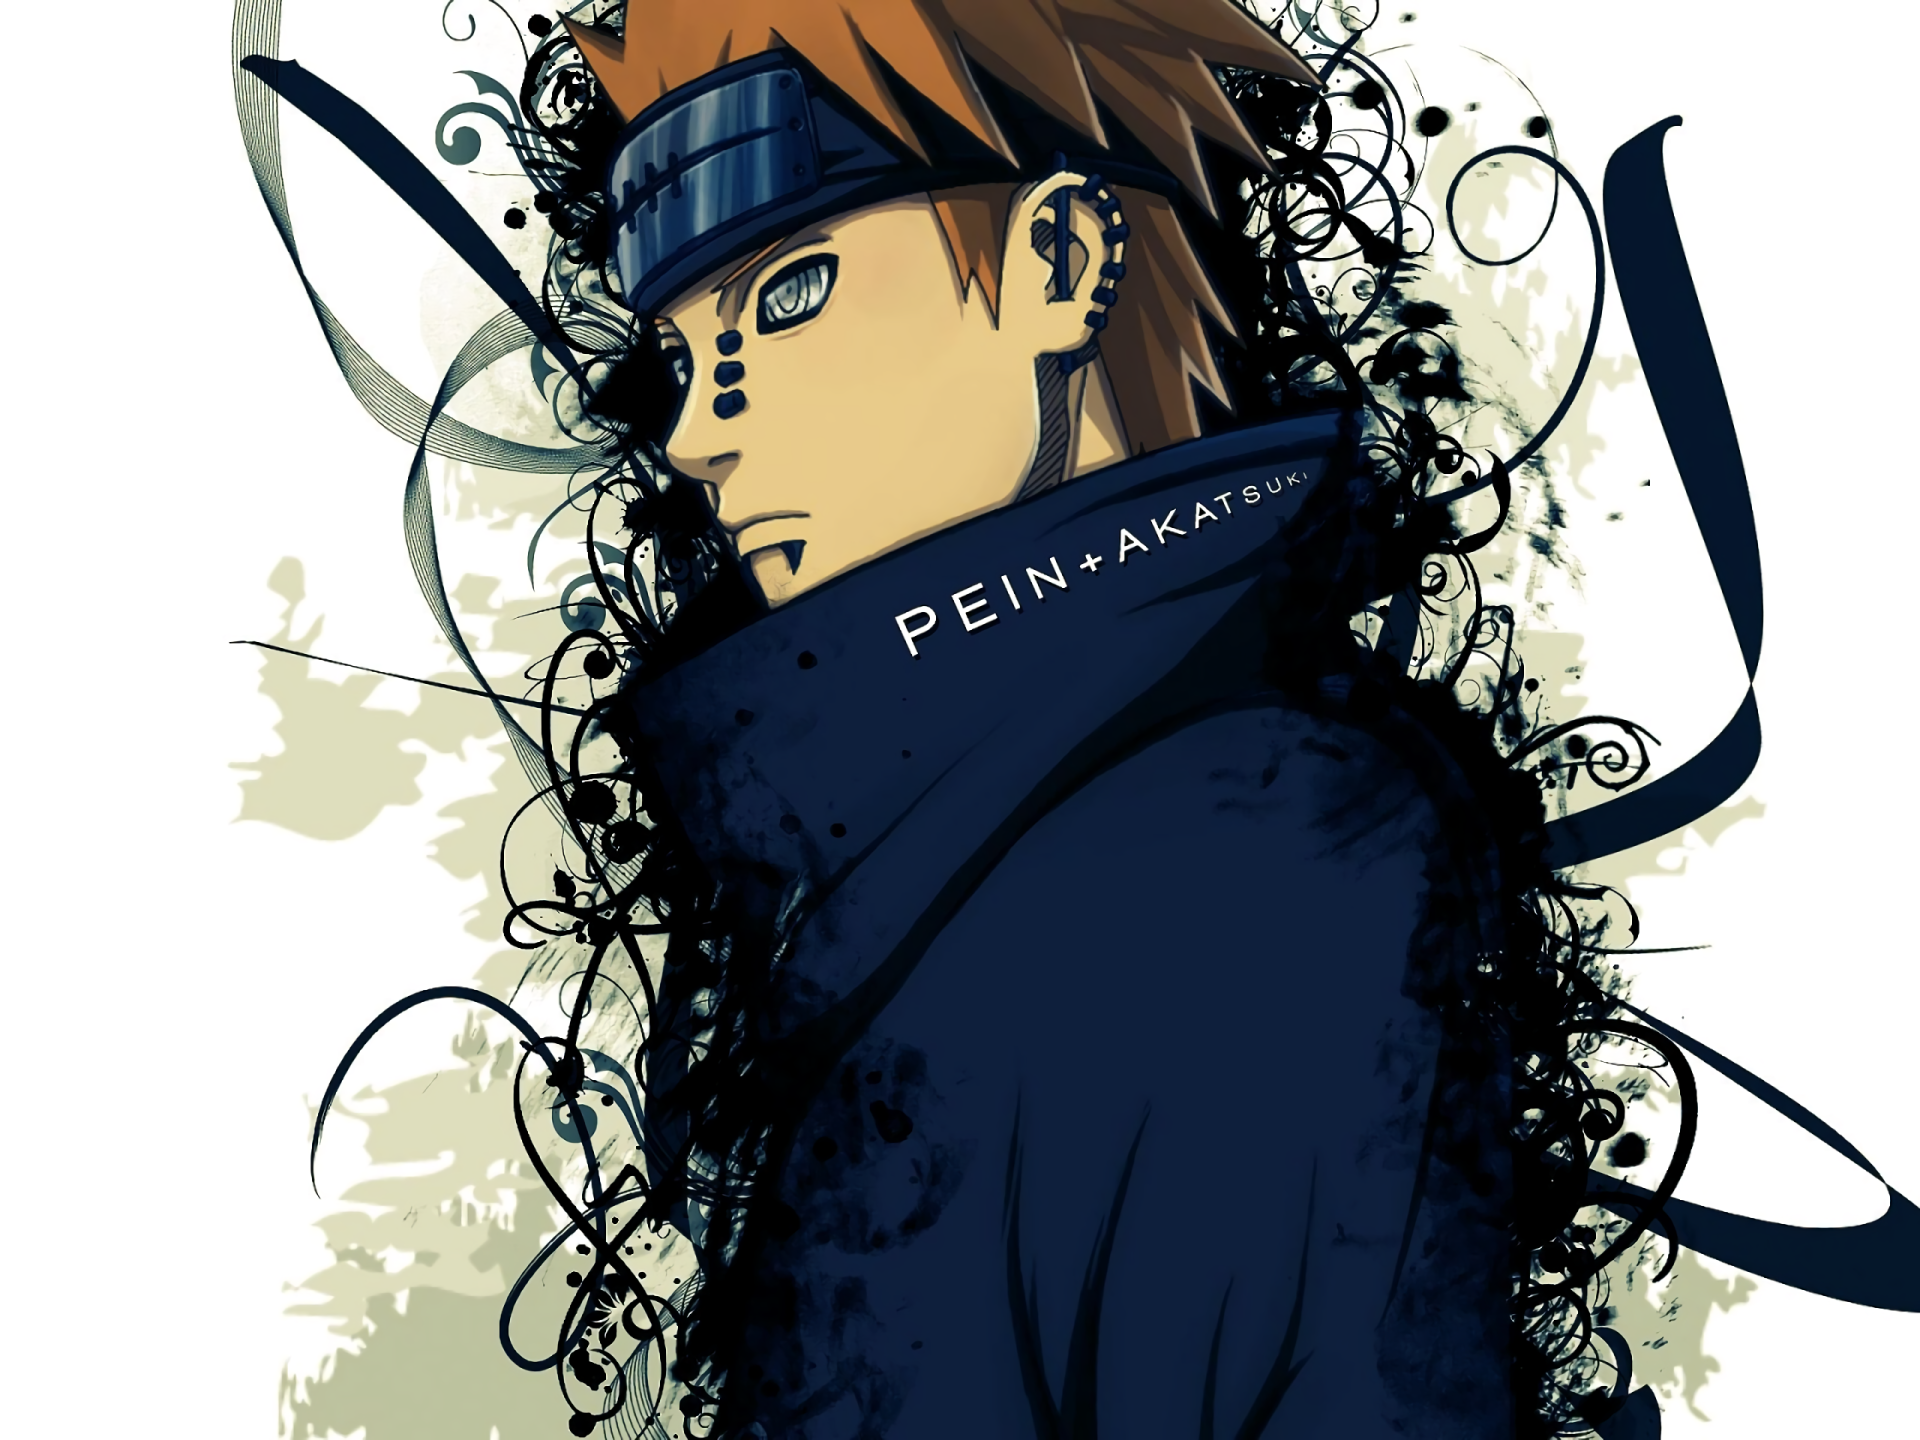 136 Pain Naruto Hd Wallpapers Background Images Wallpaper Abyss